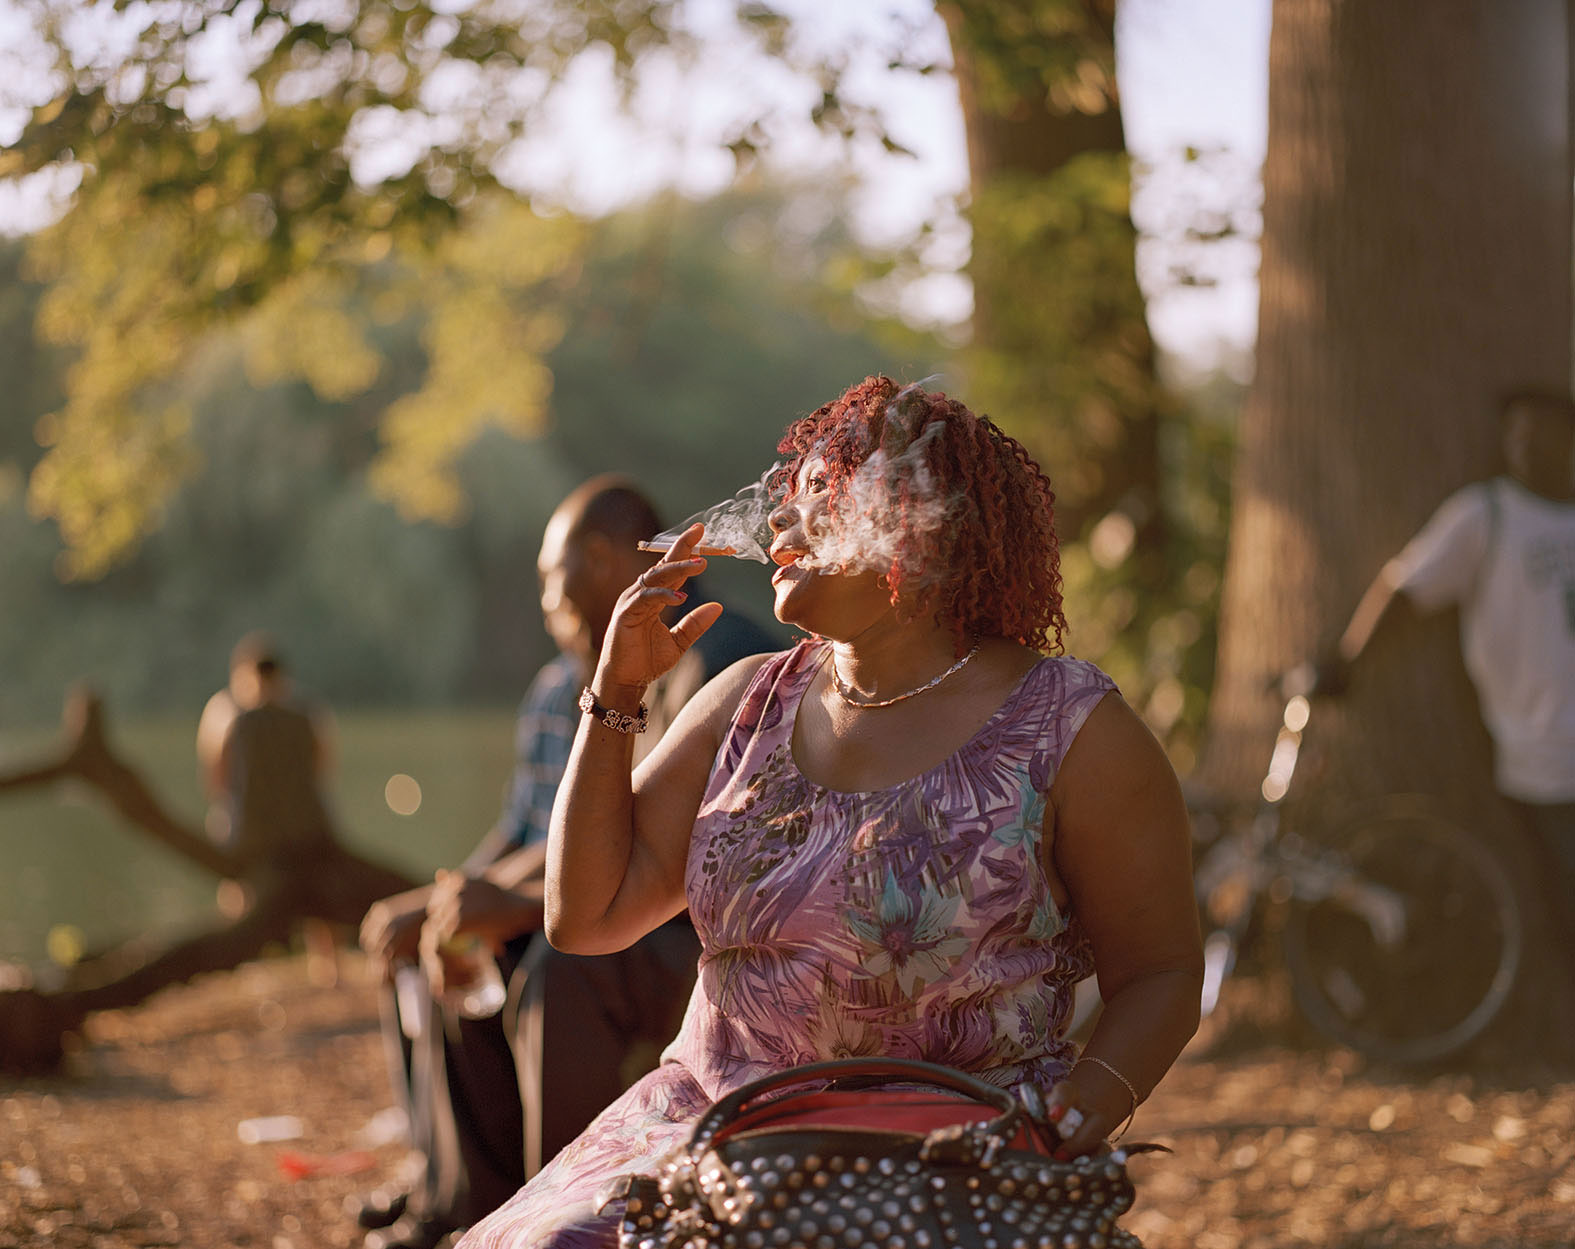 African American woman smoking with the sun against her, everything washed in golden light